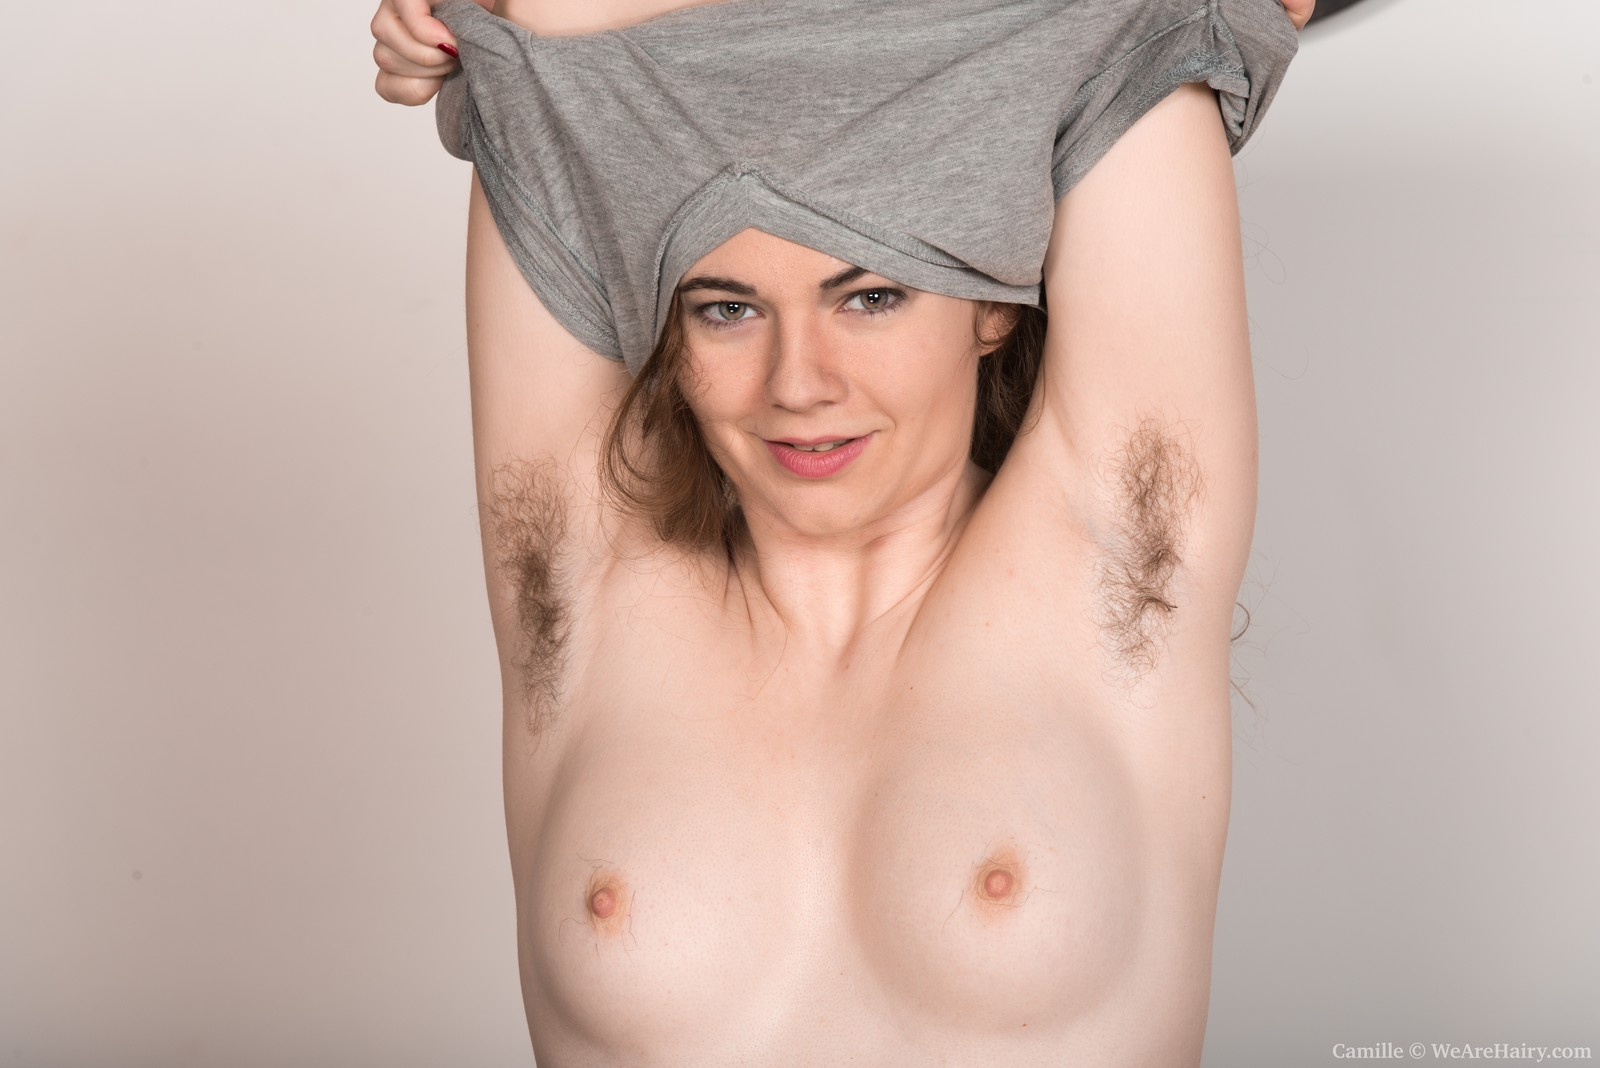 nude yoga and hairy pussy | the hairy lady blog